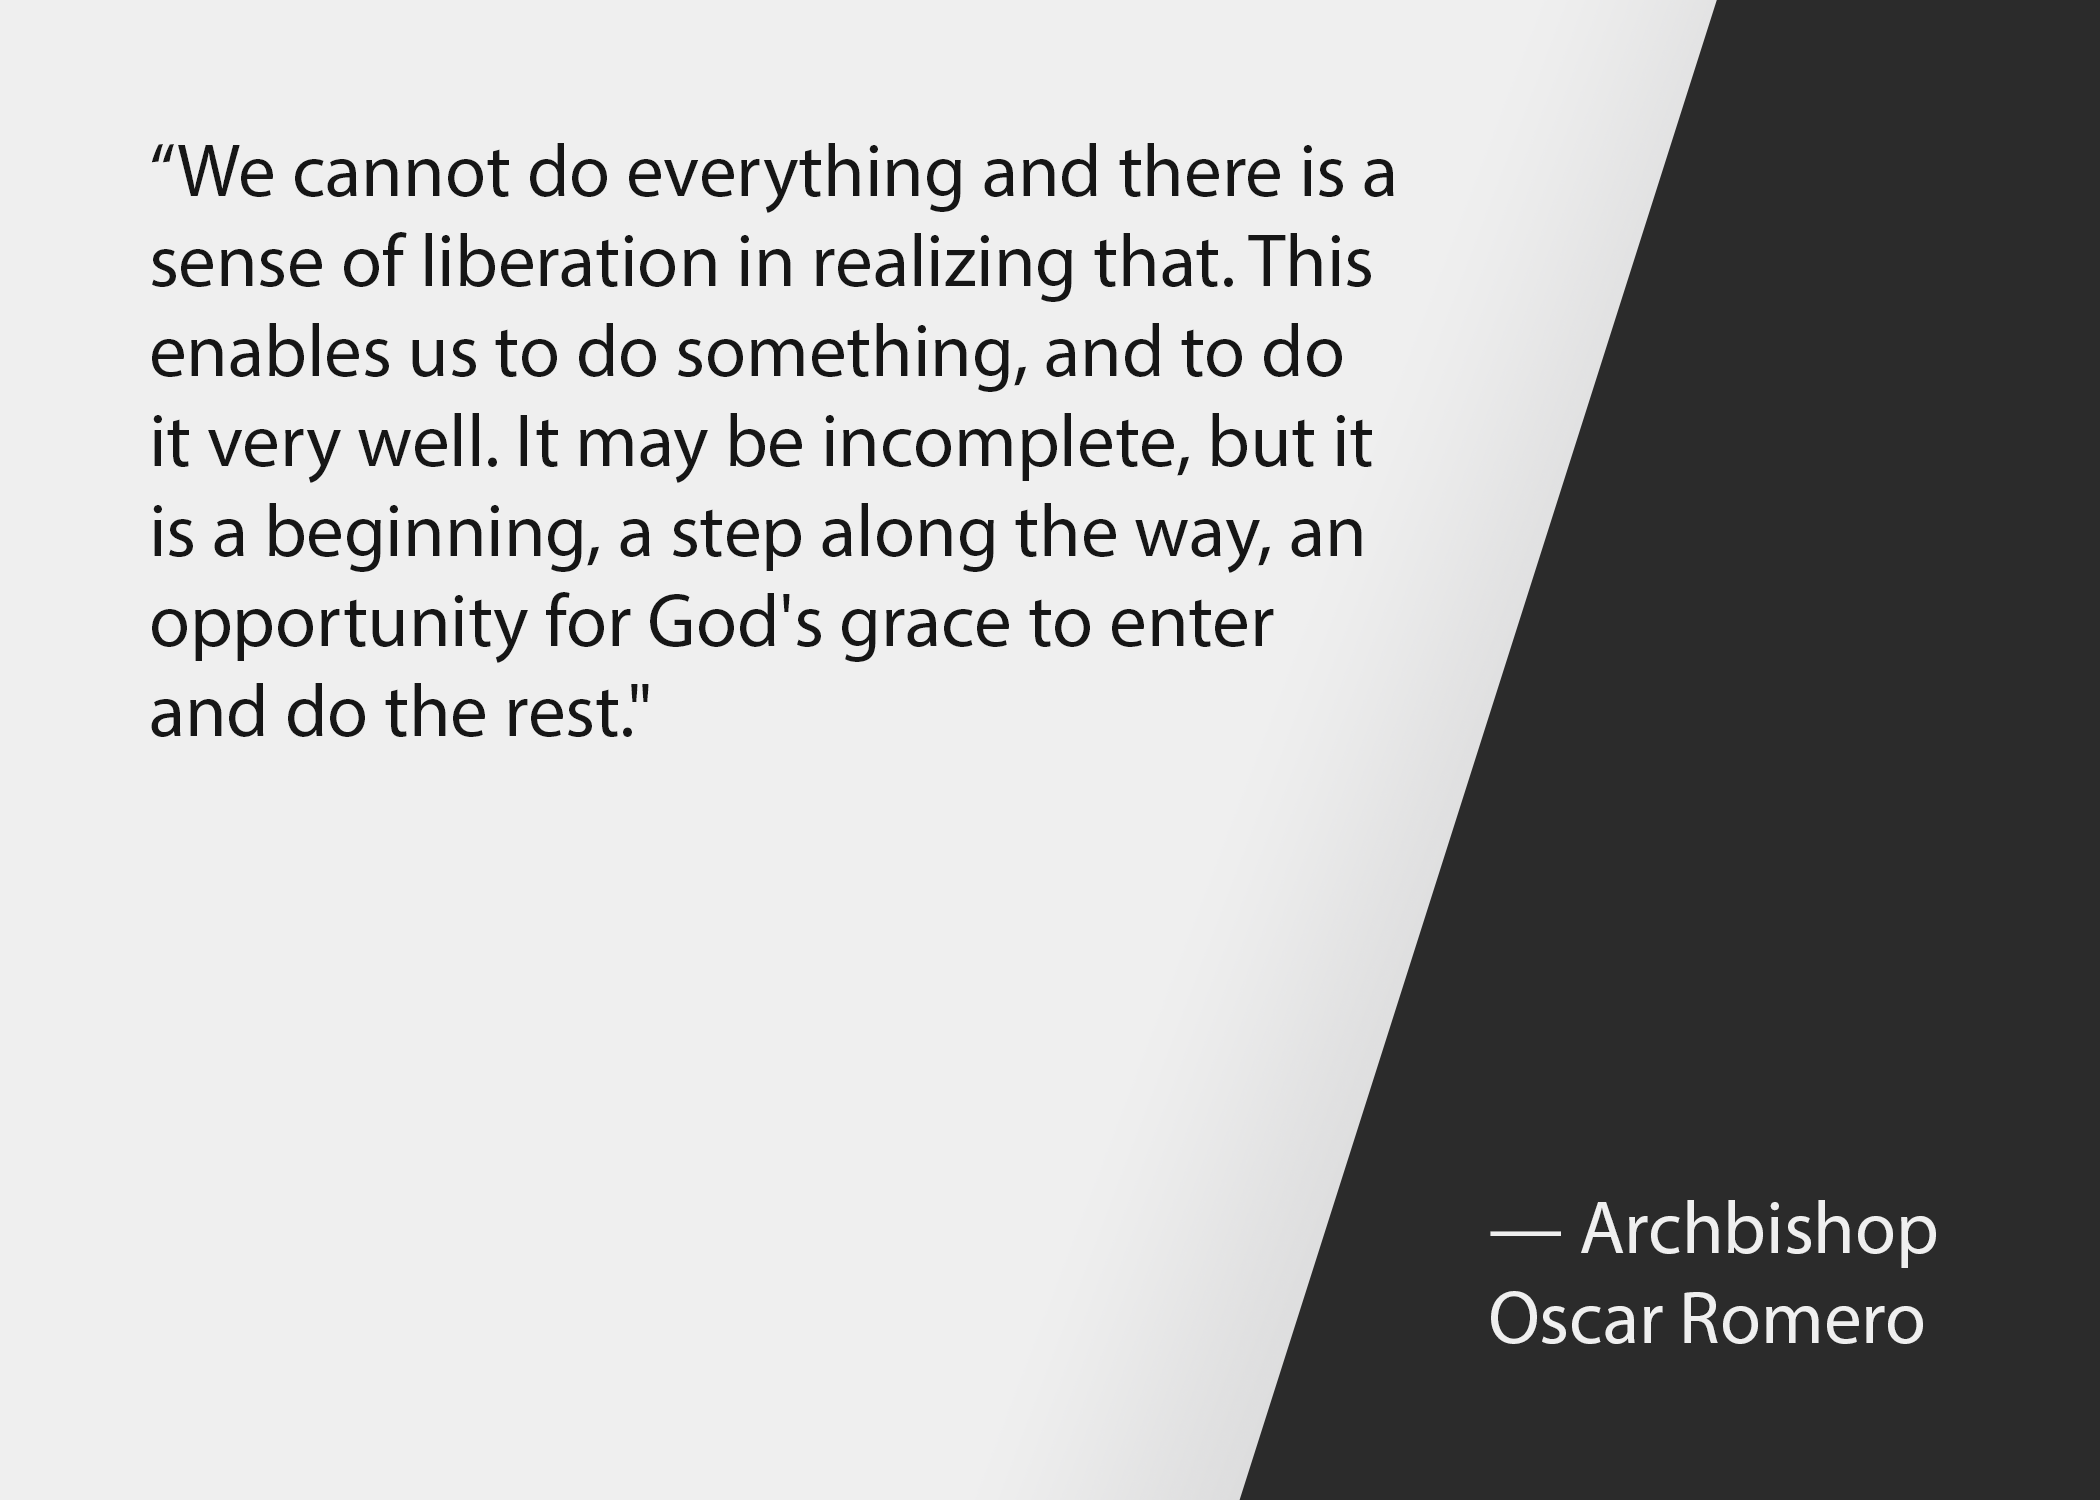 Church leadership quotes: Archbishop Oscar Romero and Bishop Ken Untener quote